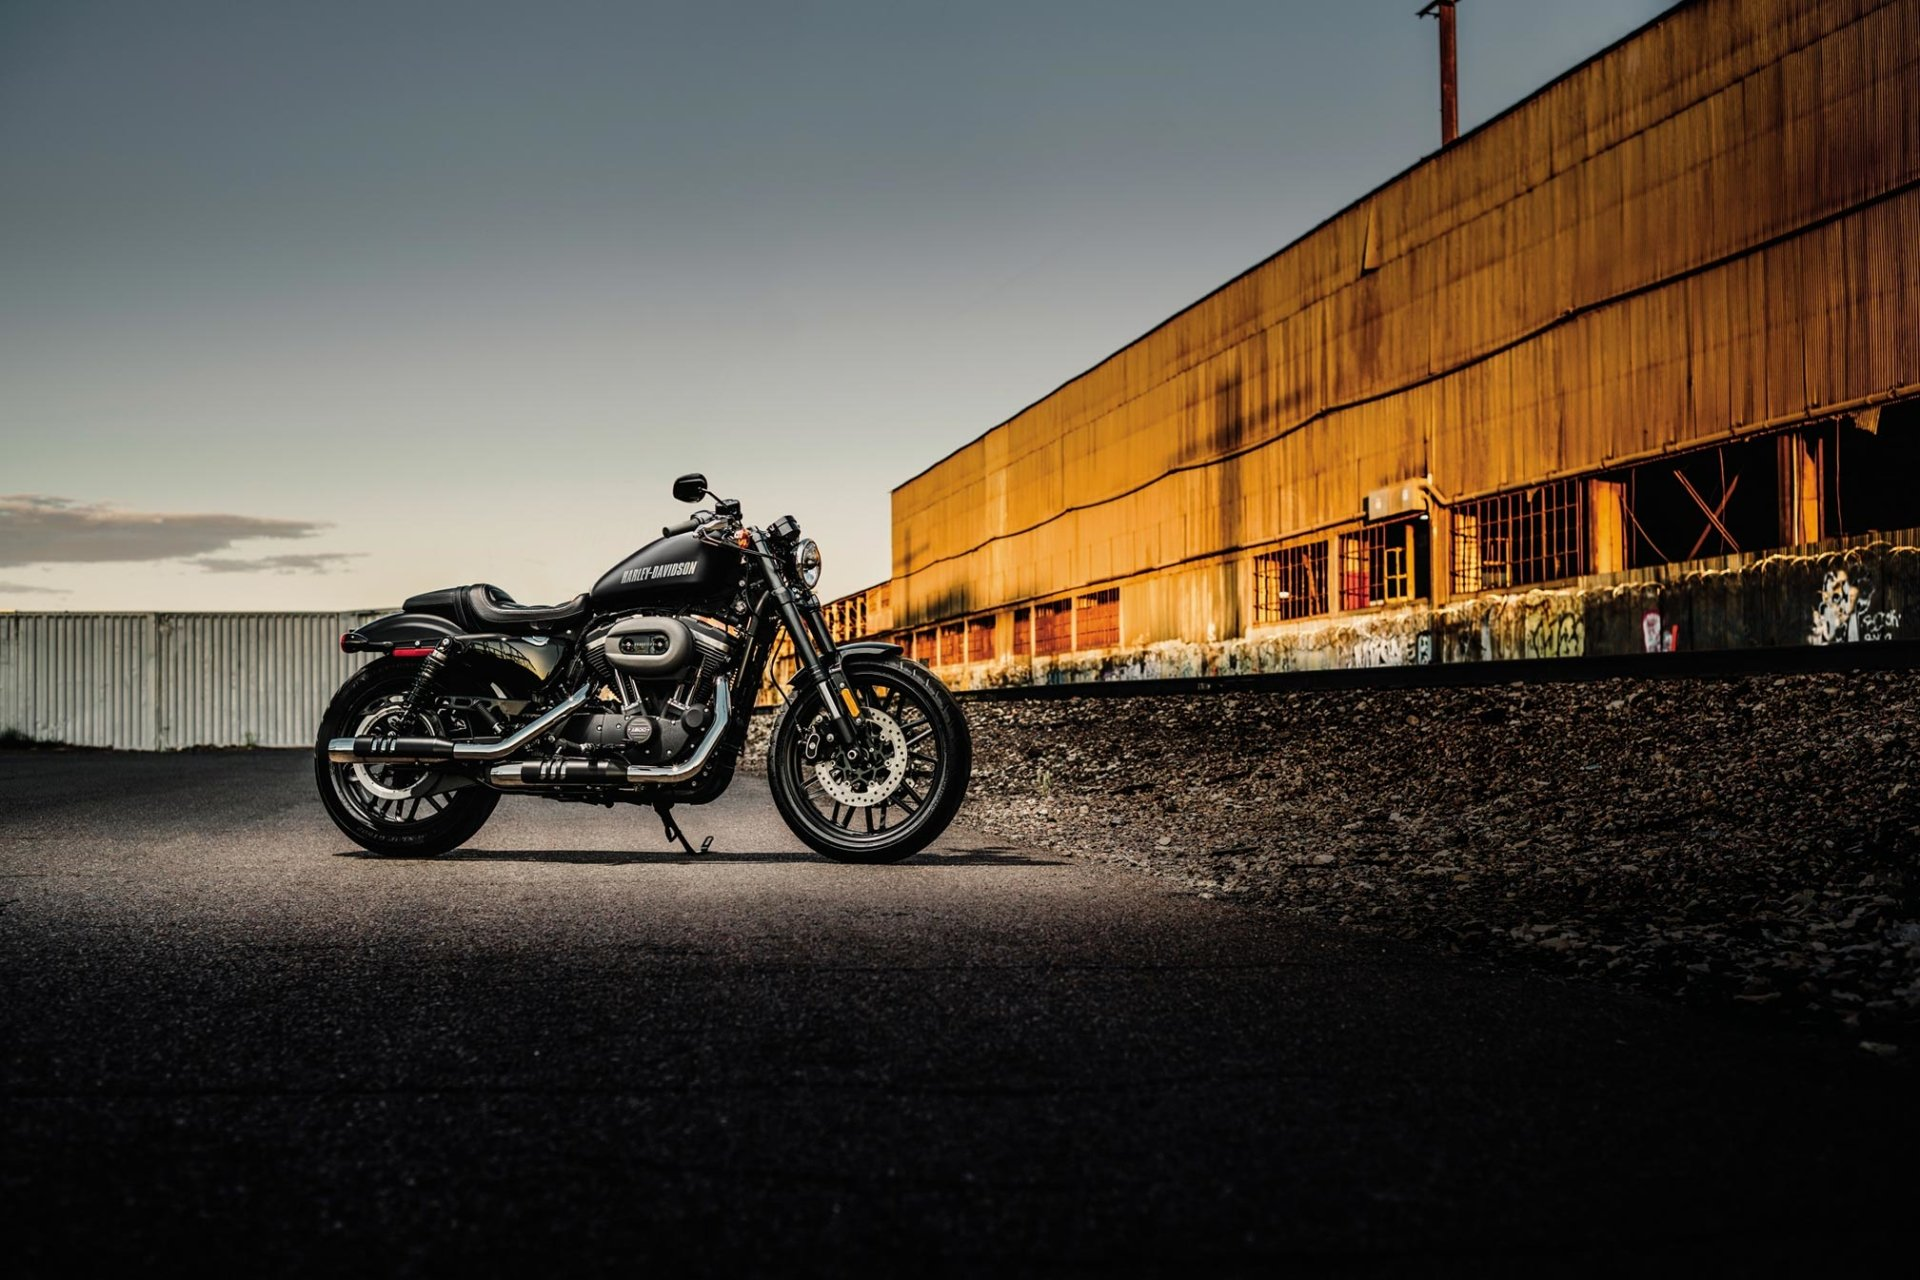 2017 Harley-Davidson Roadster HD Wallpaper